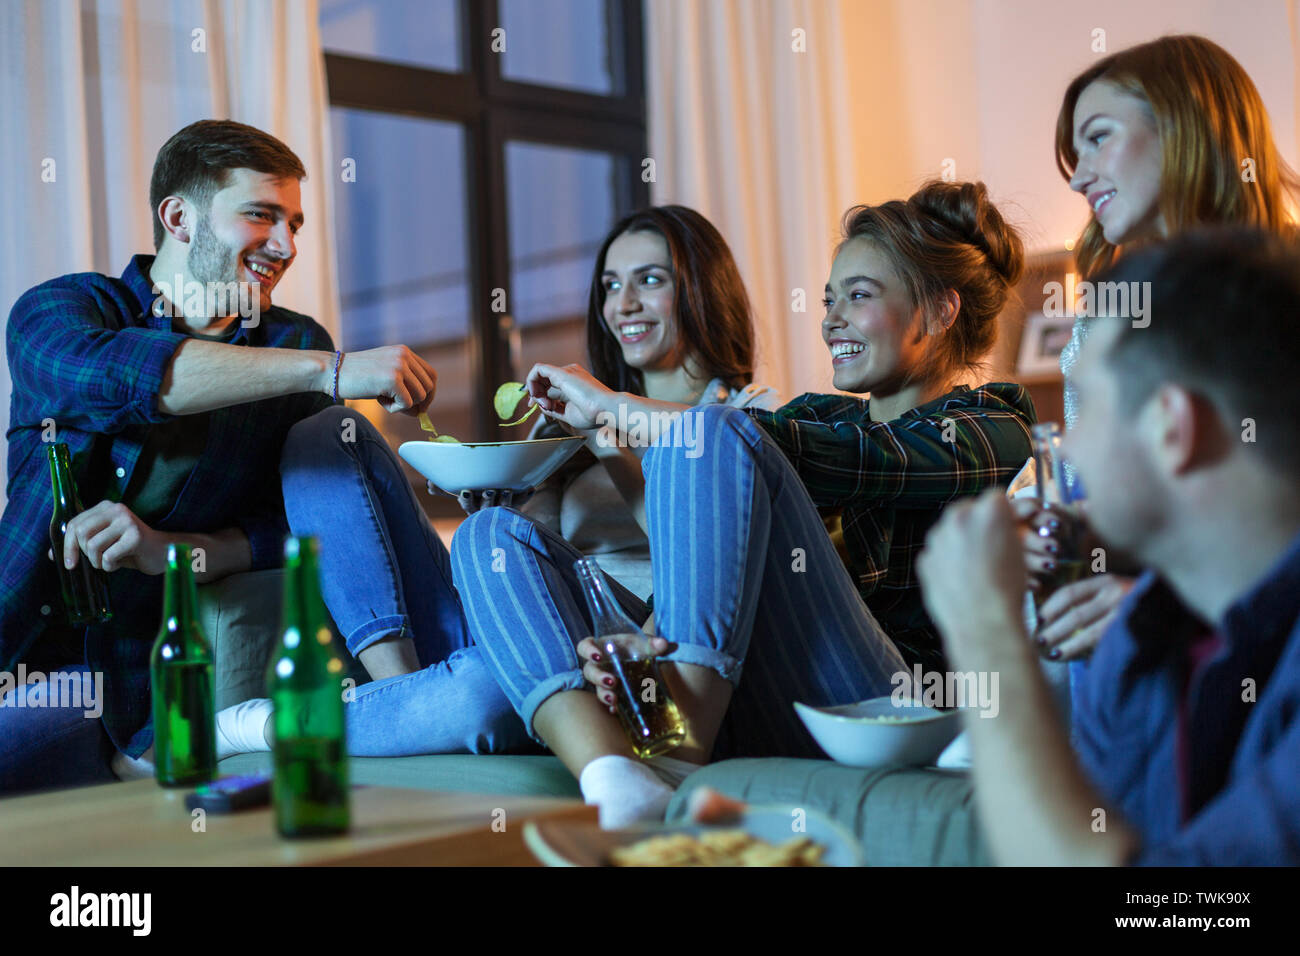 friends with drinks and snacks watching tv at home - Stock Image